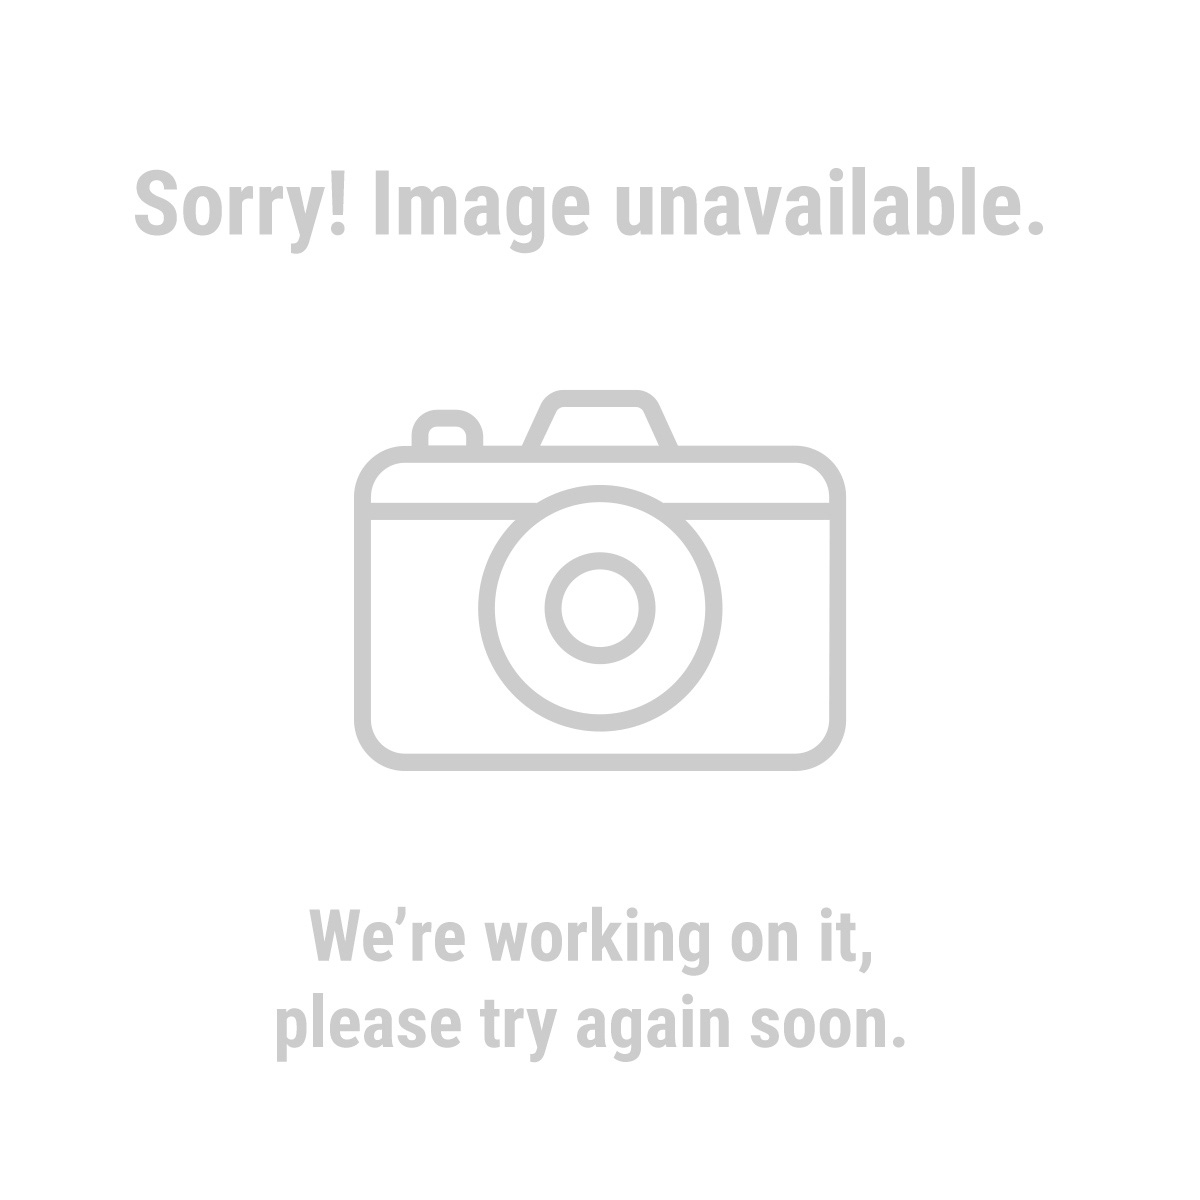 Predator Outdoor Power Equipment 60599 6-1/2 Horsepower Chipper Shredder